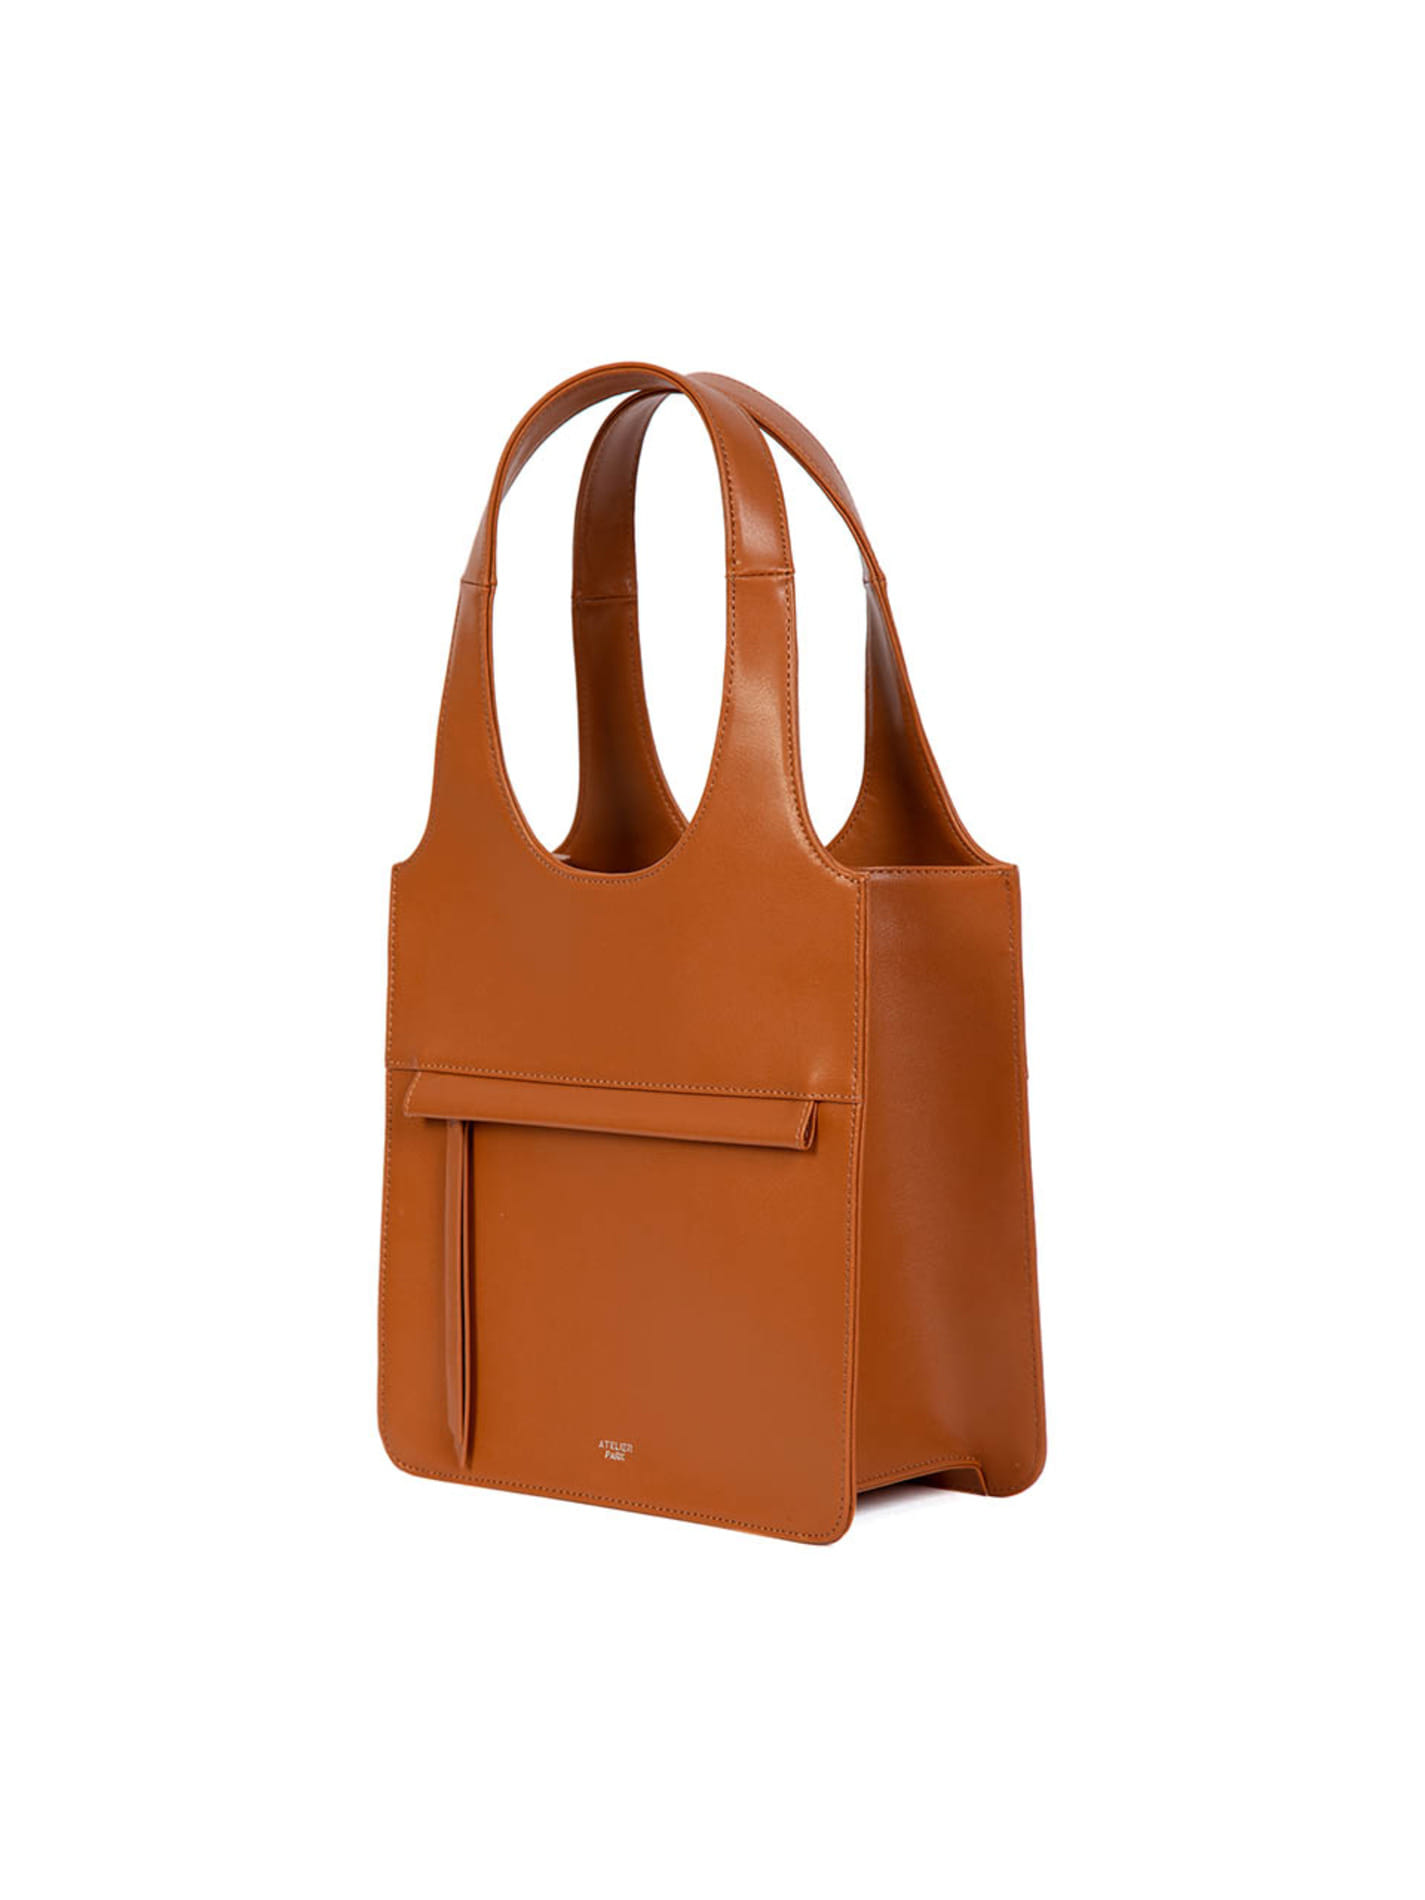 LINE TOTE BAG - MINI _ Camel